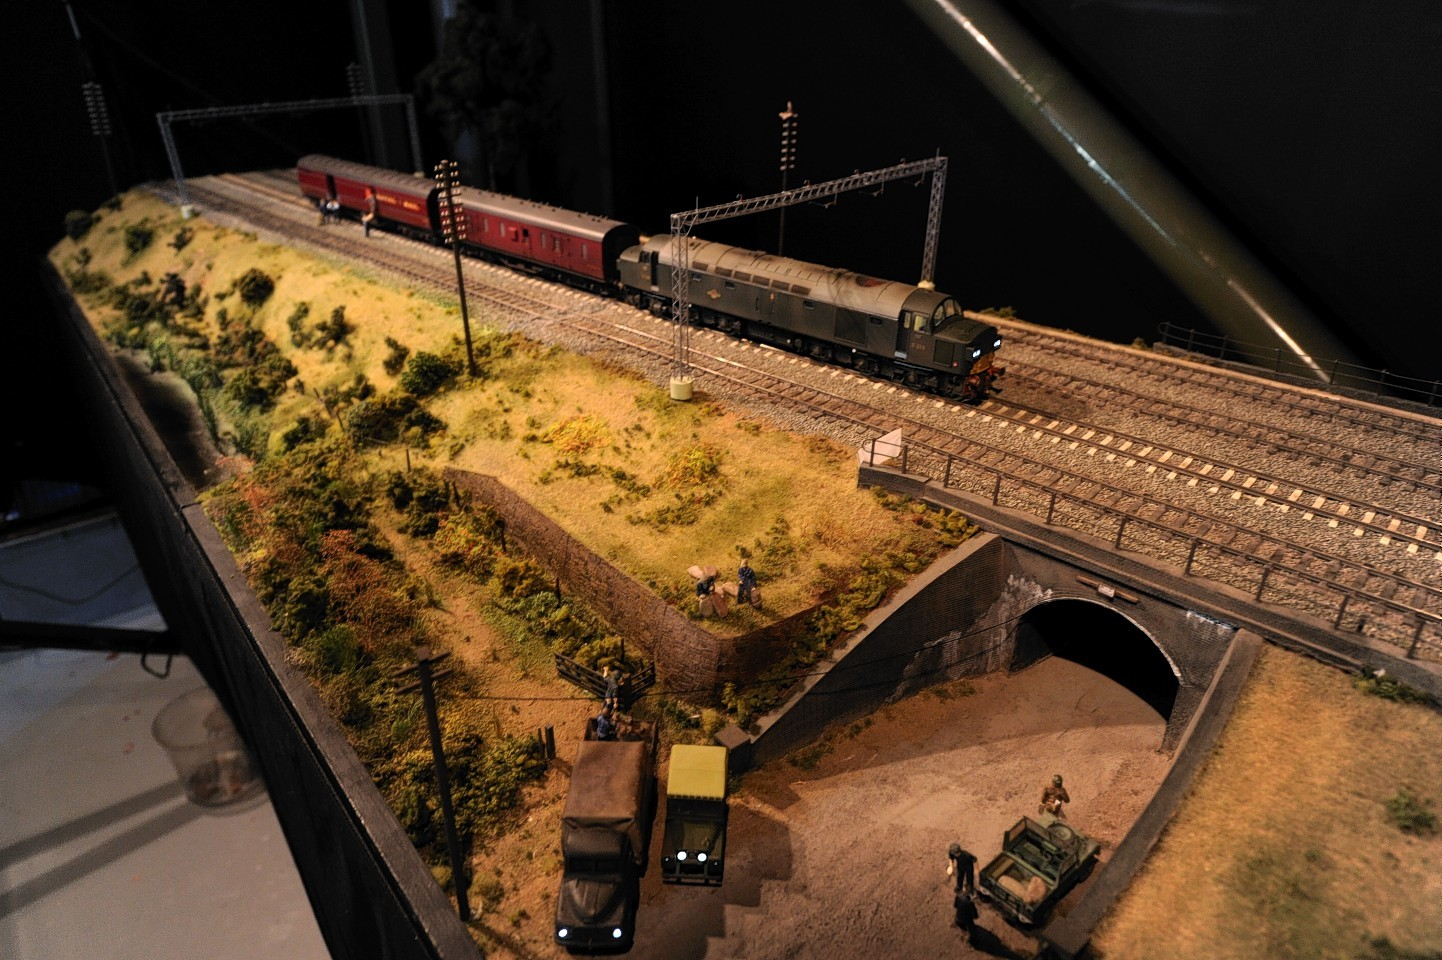 The miniature train set depicting the Great Train Robbery